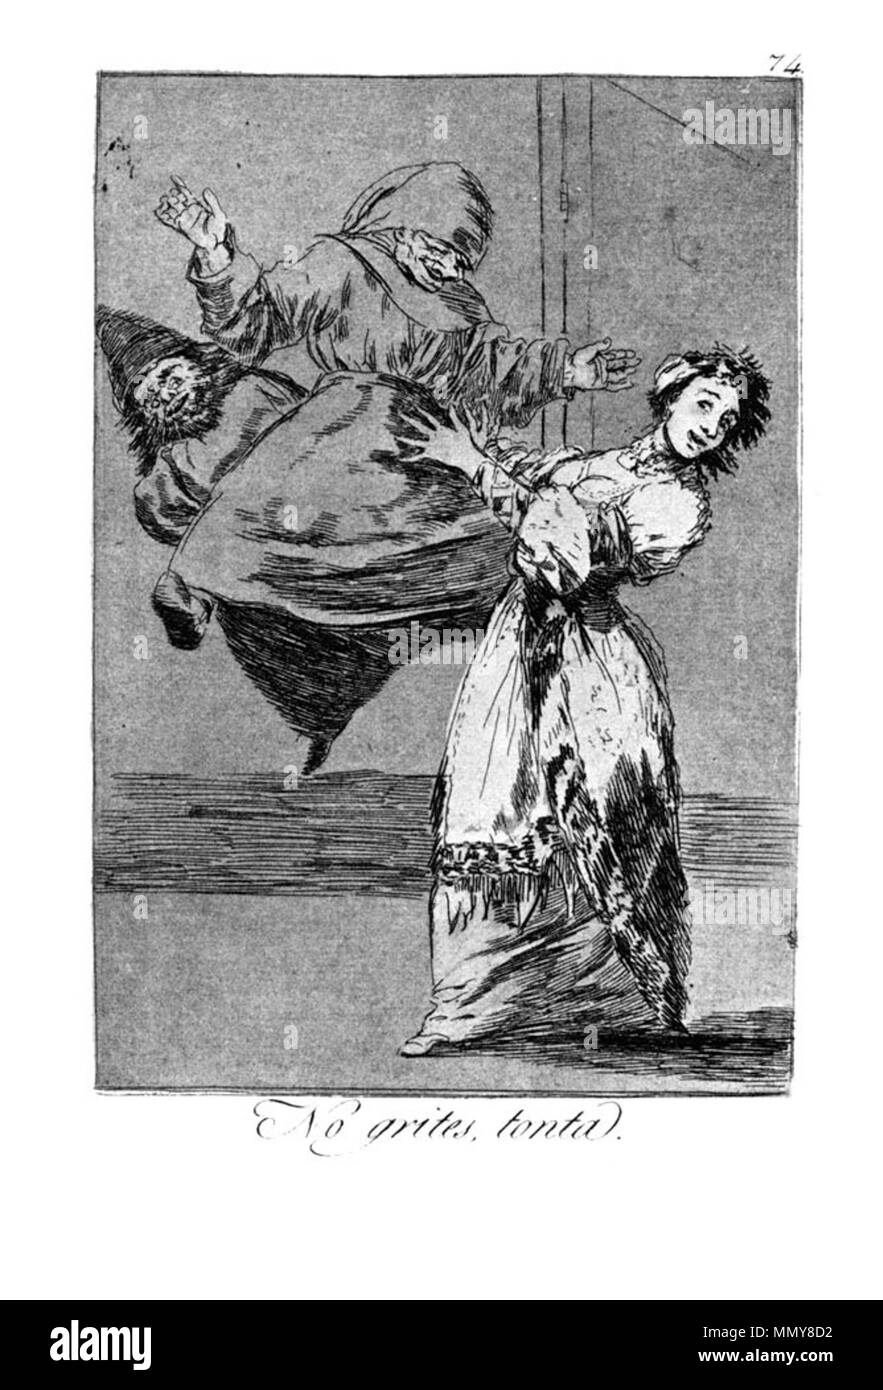 . Los Caprichos is a set of 80 aquatint prints created by Francisco Goya for release in 1799.  . 1799.   Francisco Goya (1746–1828)   Alternative names Francisco Goya Lucientes, Francisco de Goya y Lucientes, Francisco José Goya Lucientes  Description Spanish painter, printmaker, lithographer, engraver and etcher  Date of birth/death 30 March 1746 16 April 1828  Location of birth/death Fuendetodos Bordeaux  Work location Madrid, Zaragoza, Bordeaux  Authority control  : Q5432 VIAF:?54343141 ISNI:?0000 0001 2280 1608 ULAN:?500118936 LCCN:?n79003363 NLA:?36545788 WorldCat Goya - Caprichos (74 - Stock Image